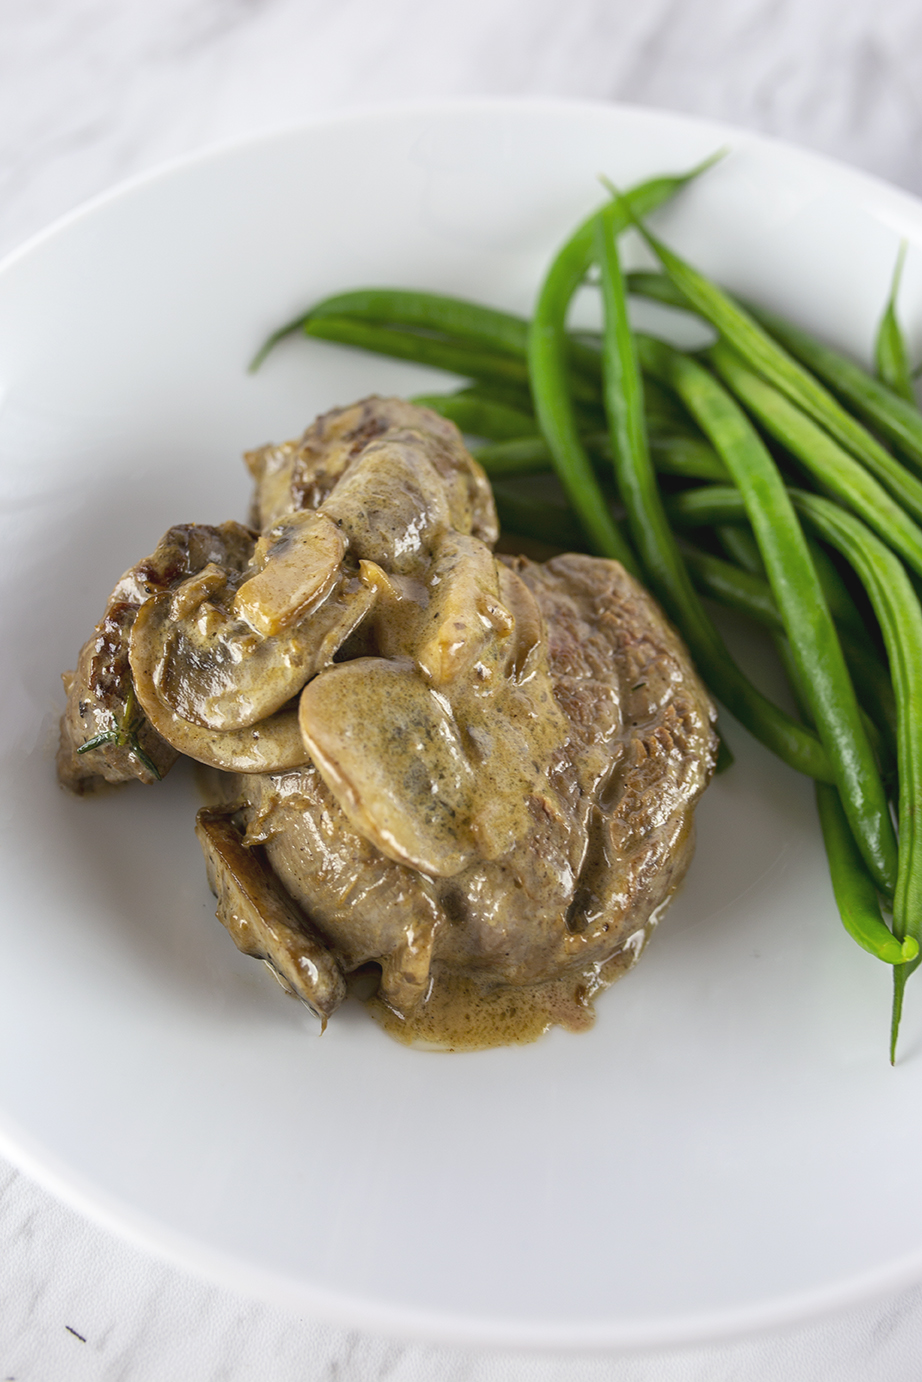 Steak tenderloin served with green beans topped with mushroom sauce on a white plate.